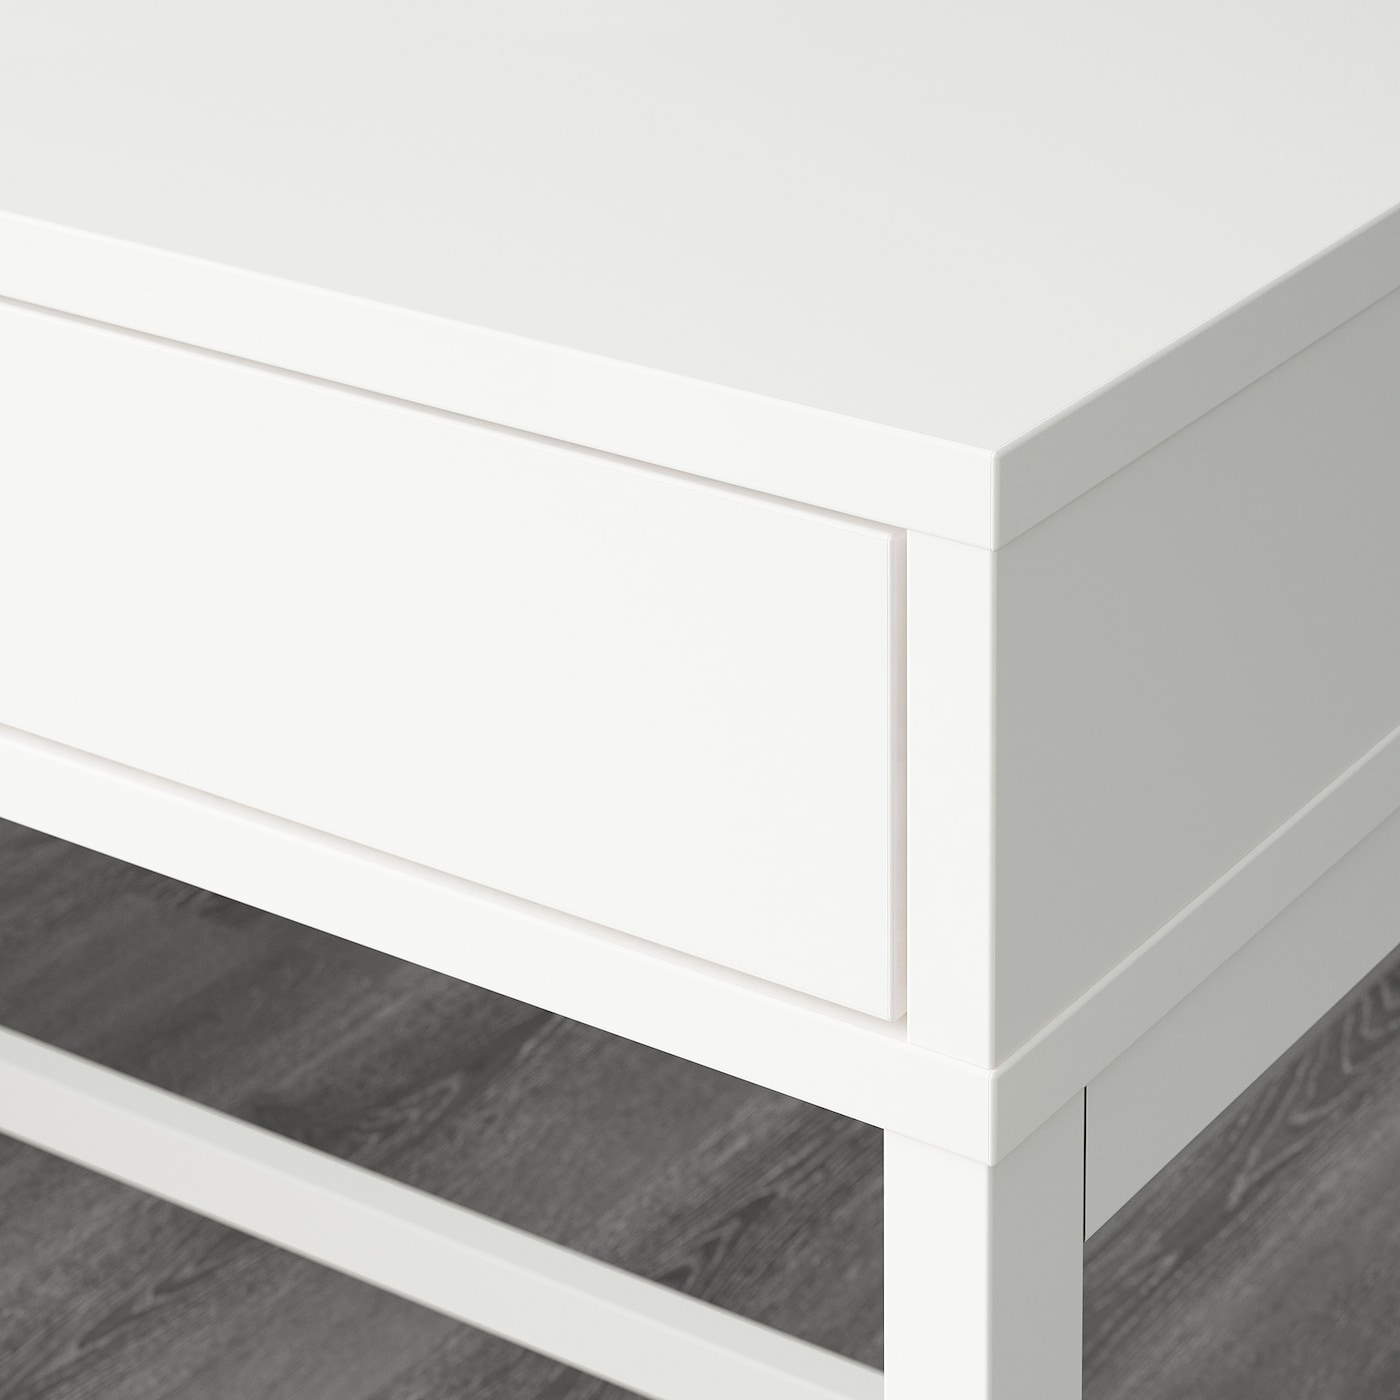 Ikea office desk. Two sets of drawers